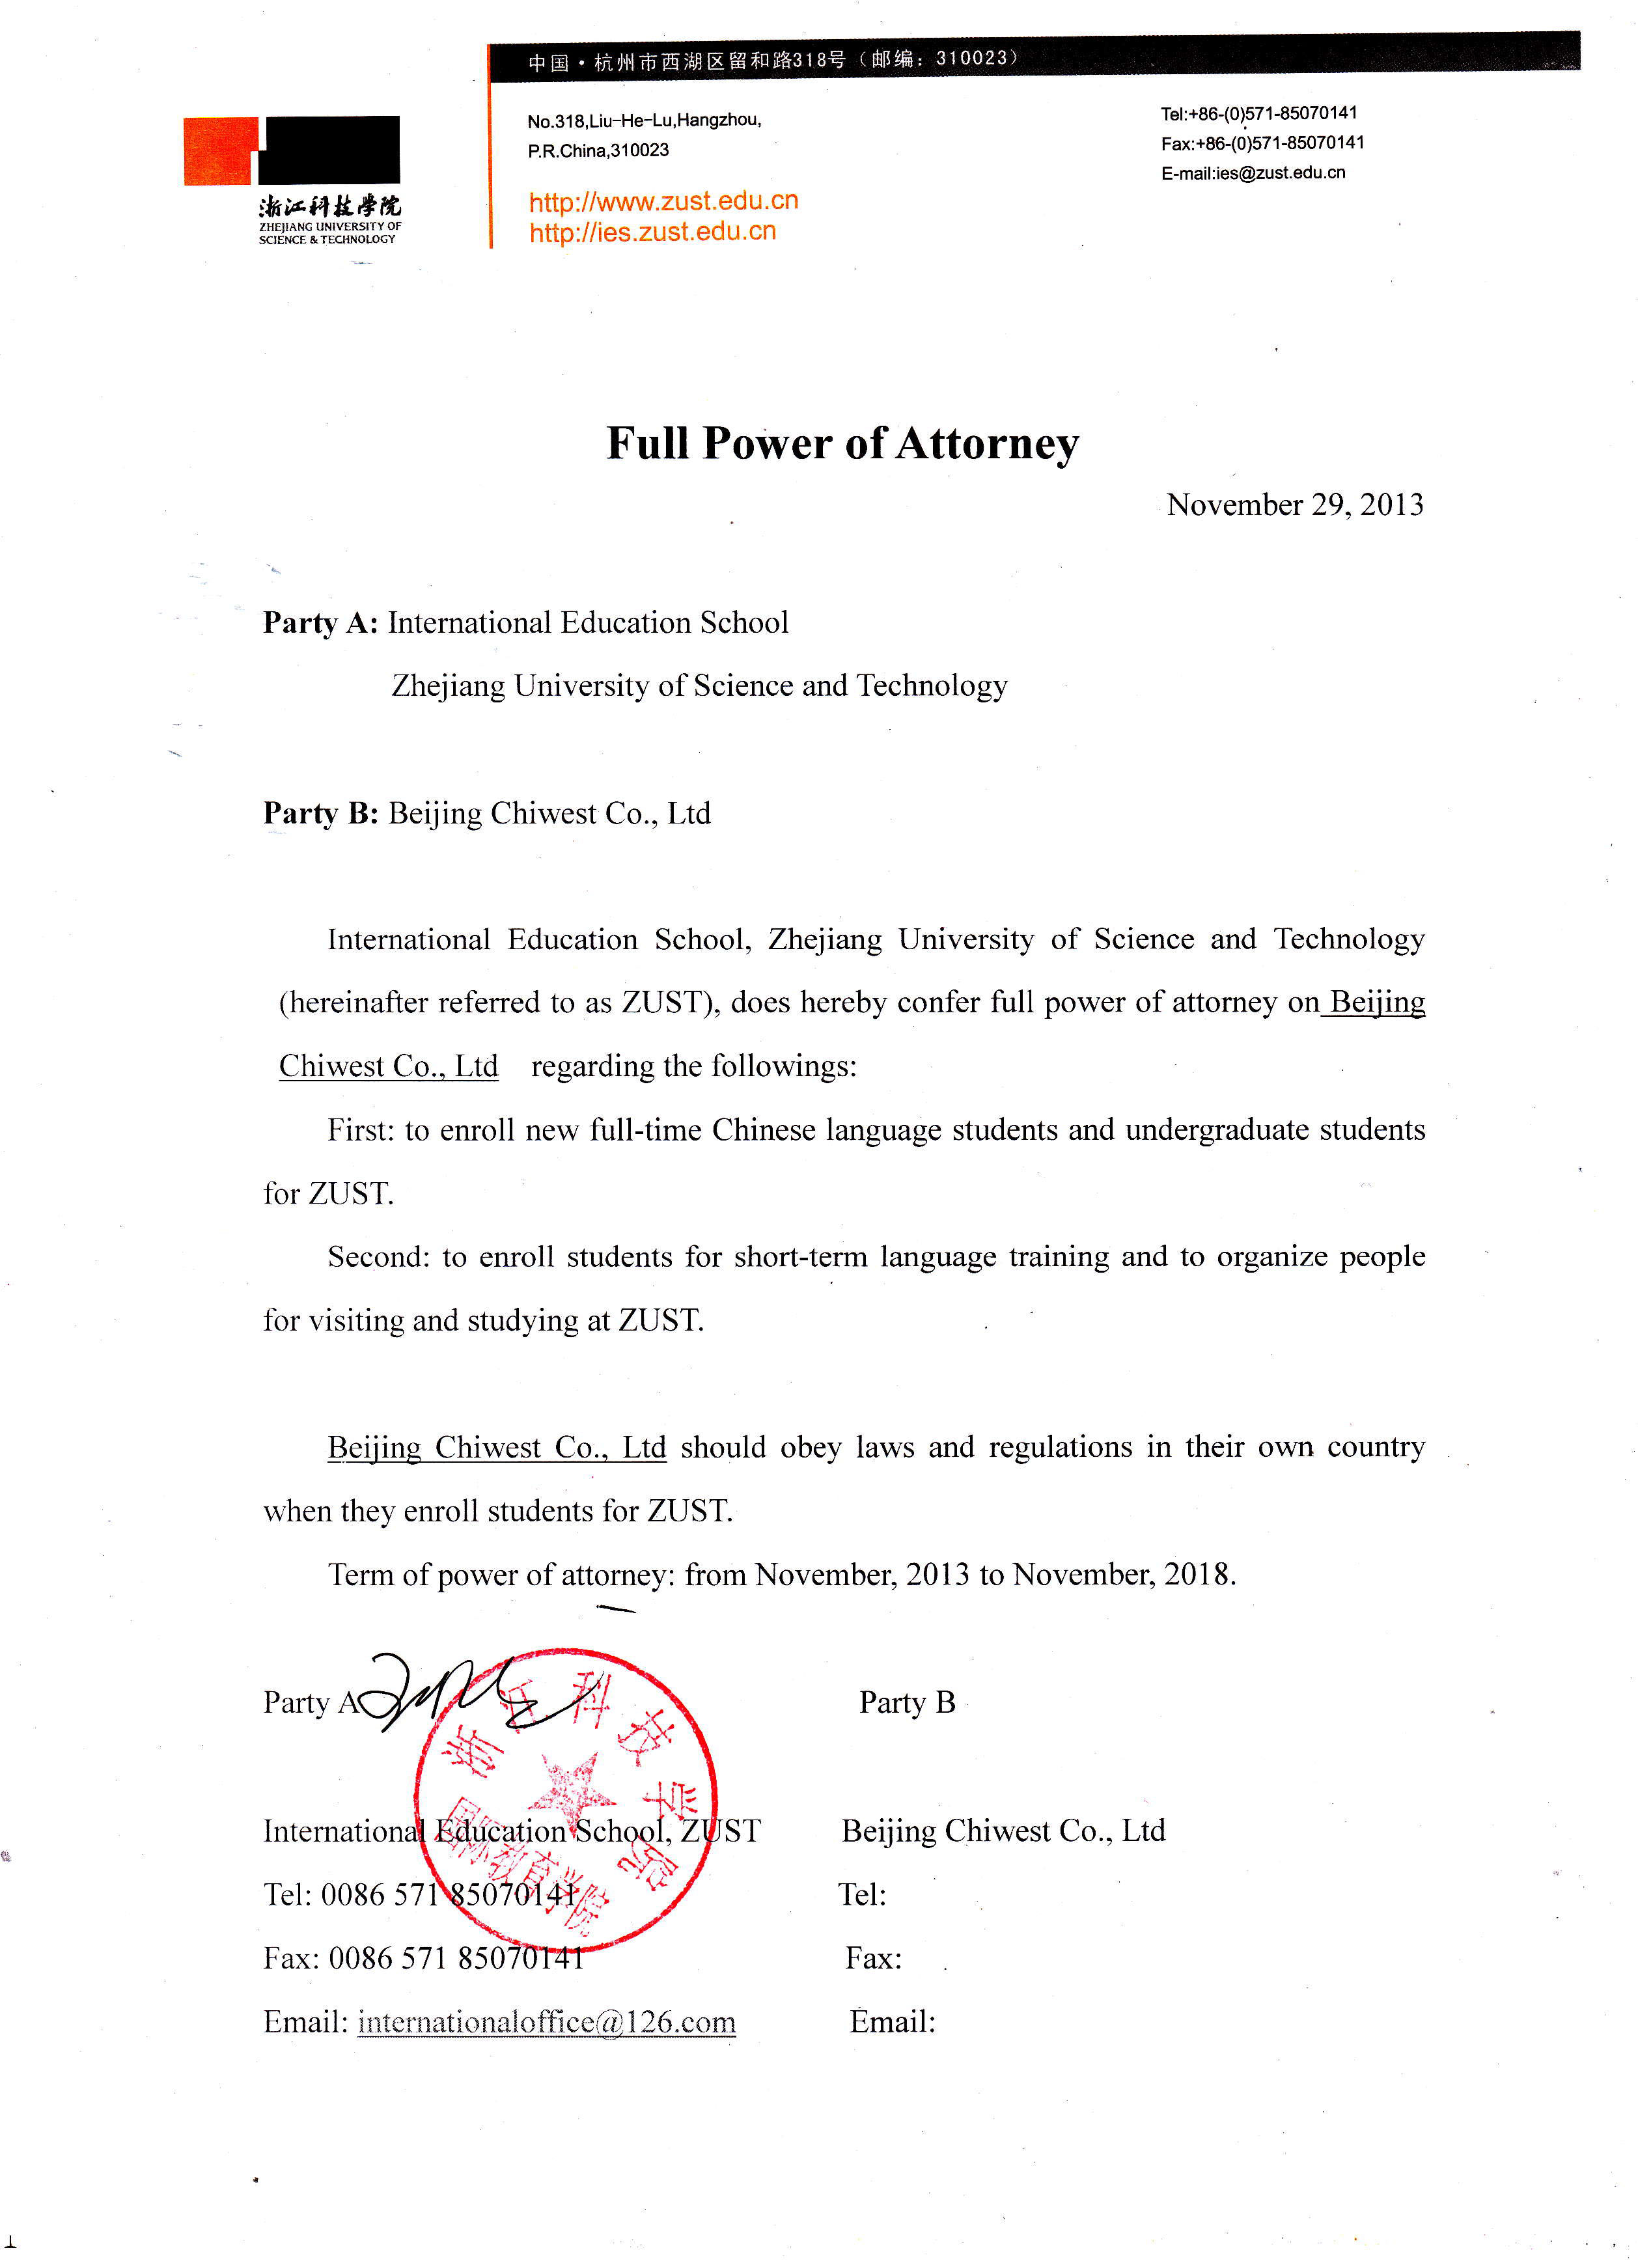 Zhejiang University of Science and Technology Authorization Letter | Study in China | CUCAS